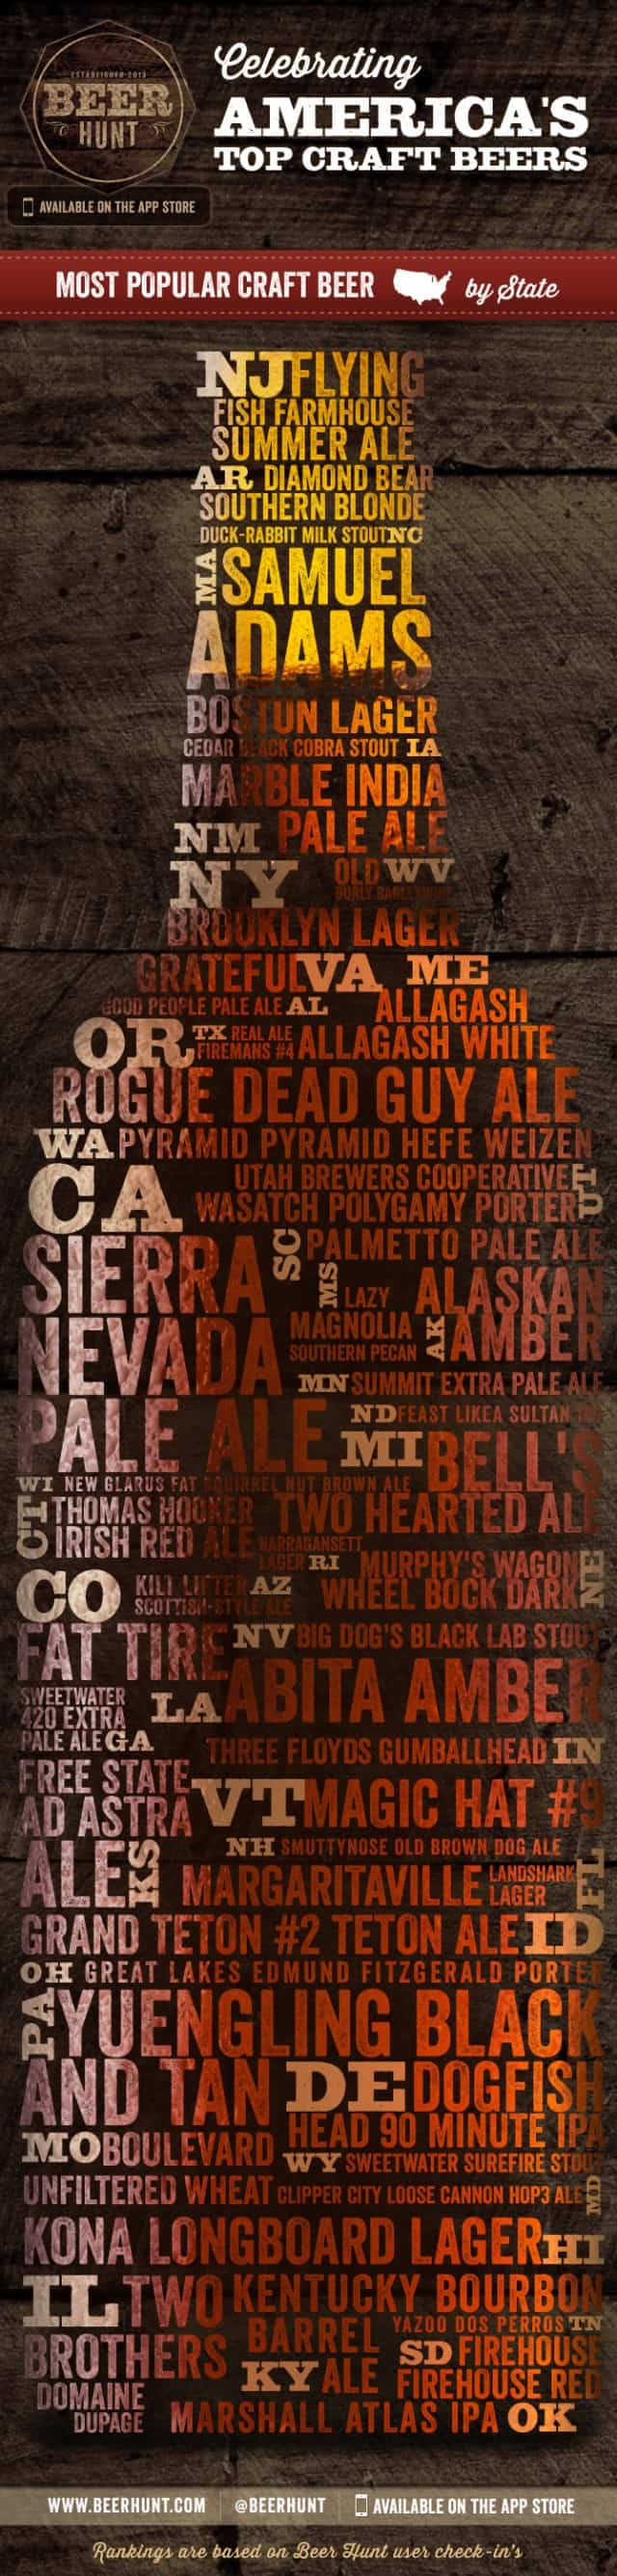 Most Popular Craft Beer By State